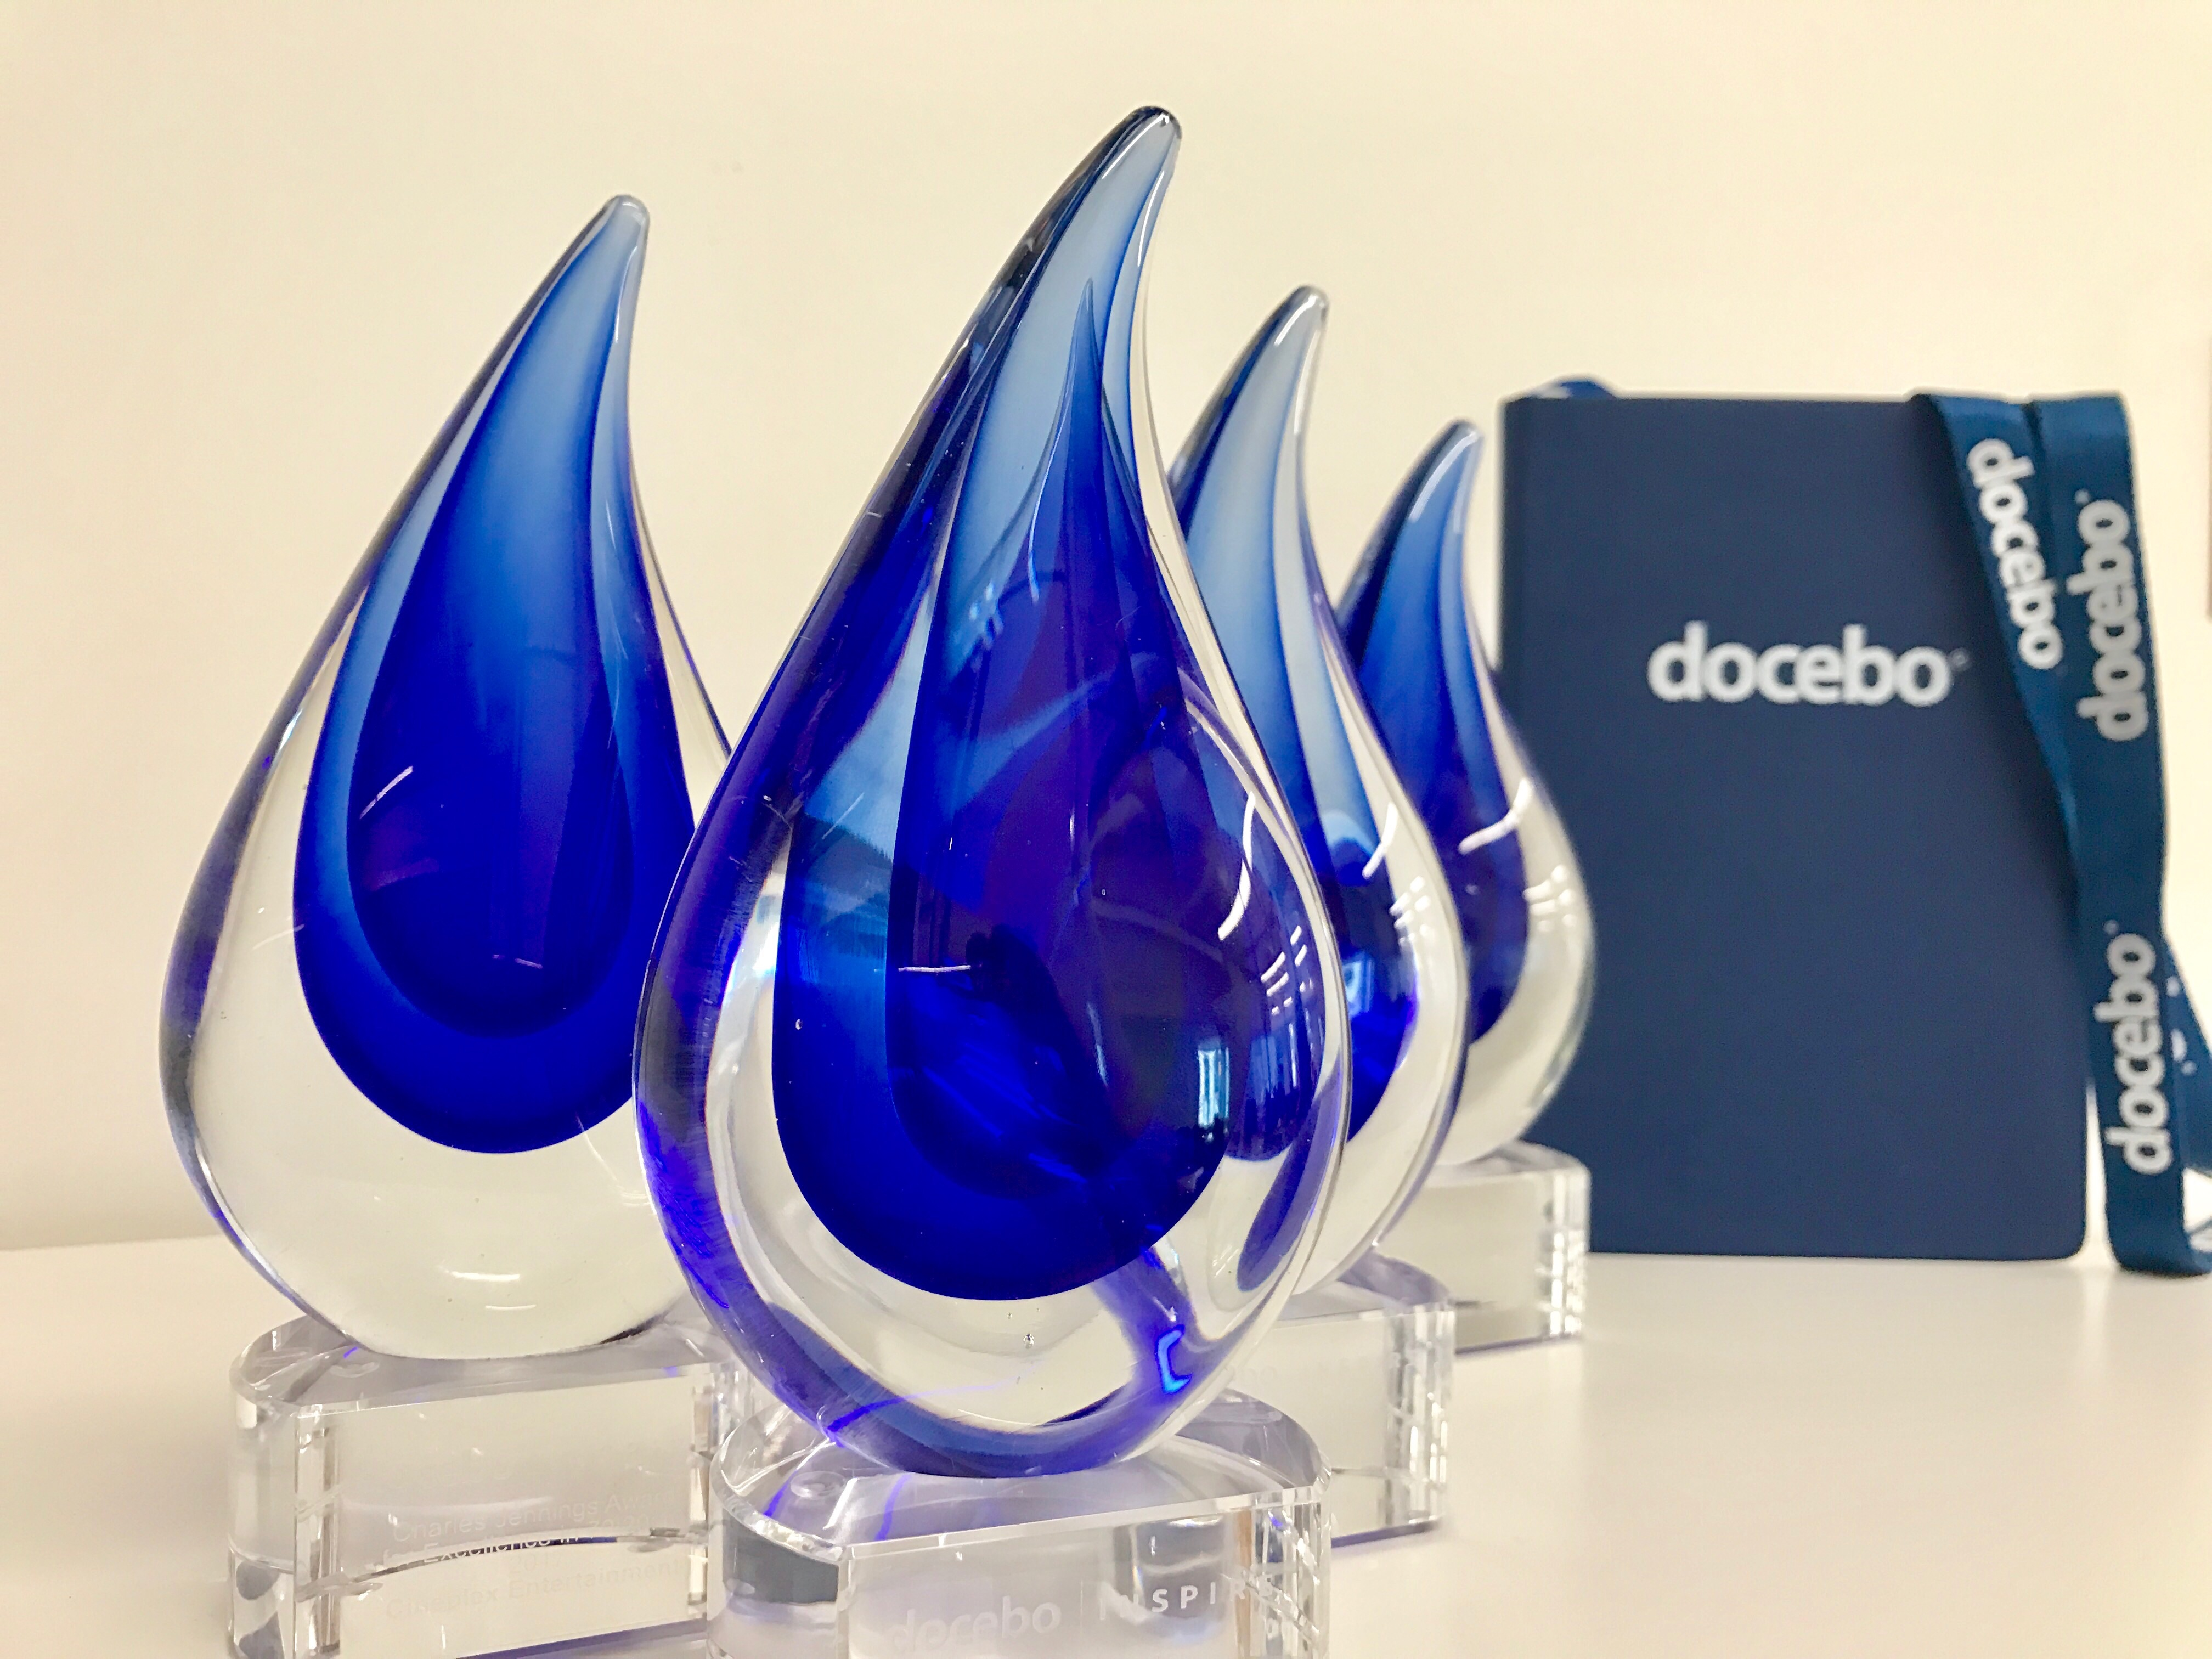 The 2017 Docebo Learning Awards recognized achievements in five categories.